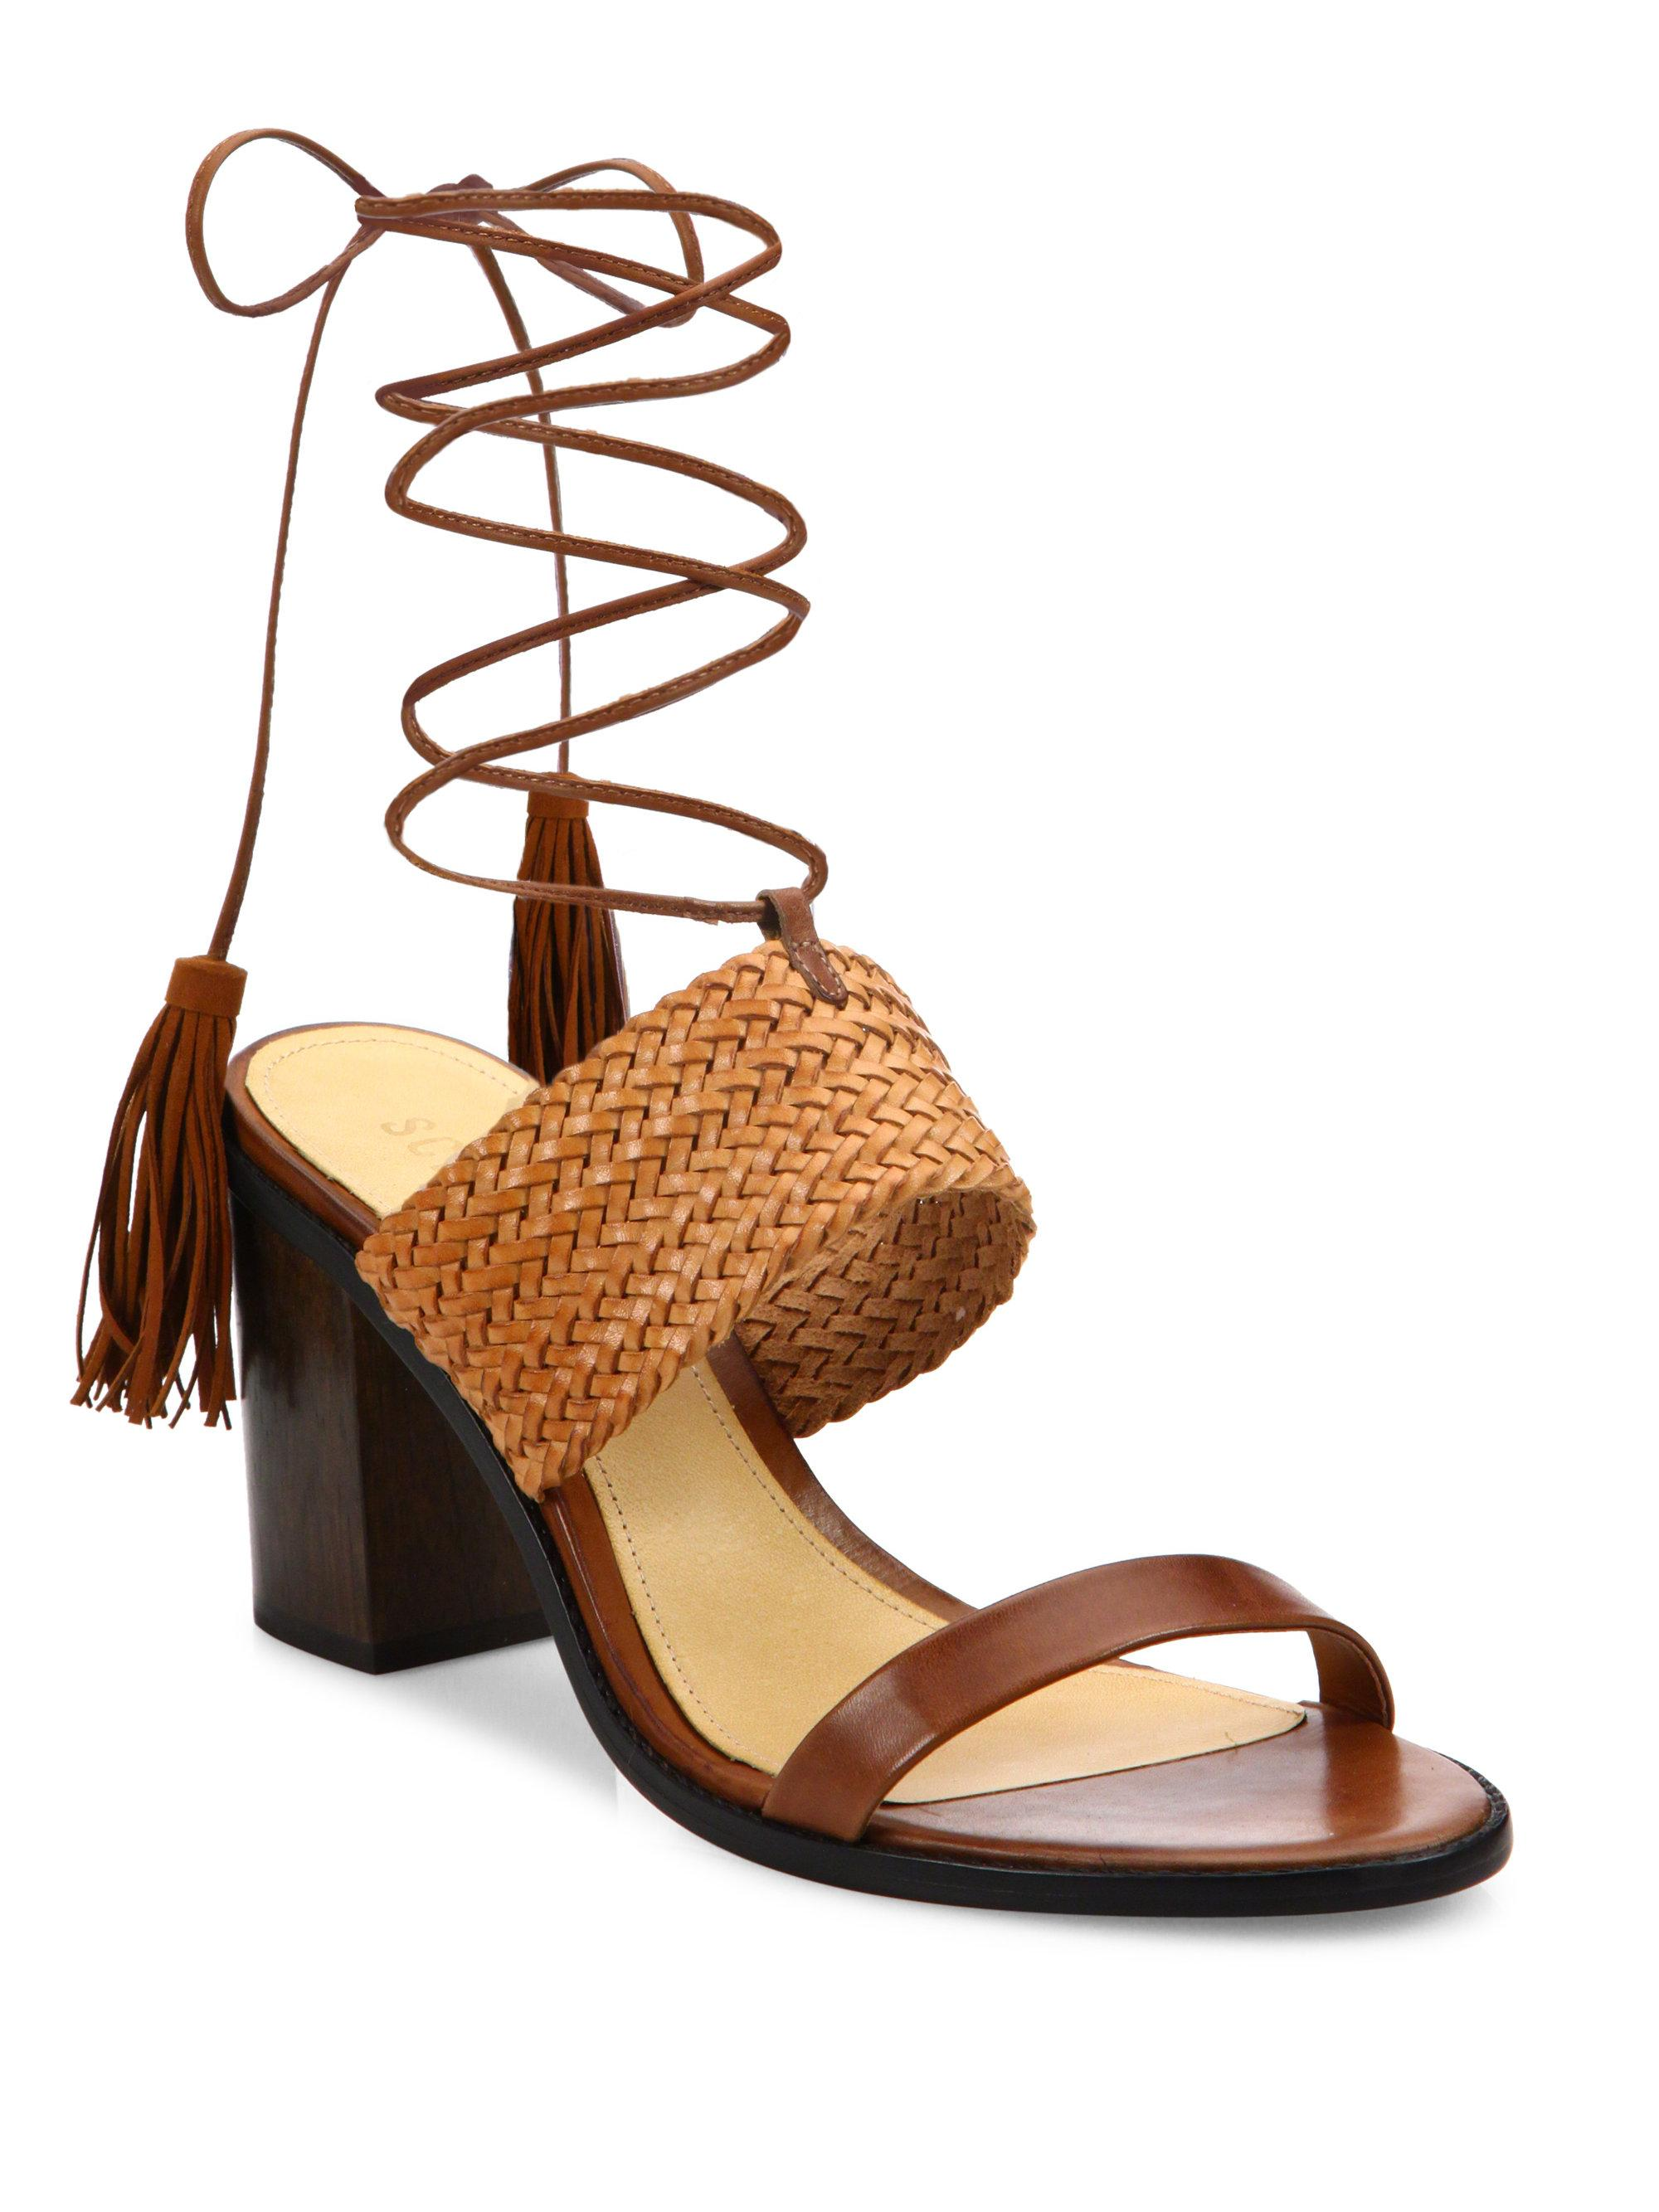 84d994c65259 Schutz Luky Lace-up Leather Sandals in Brown - Lyst